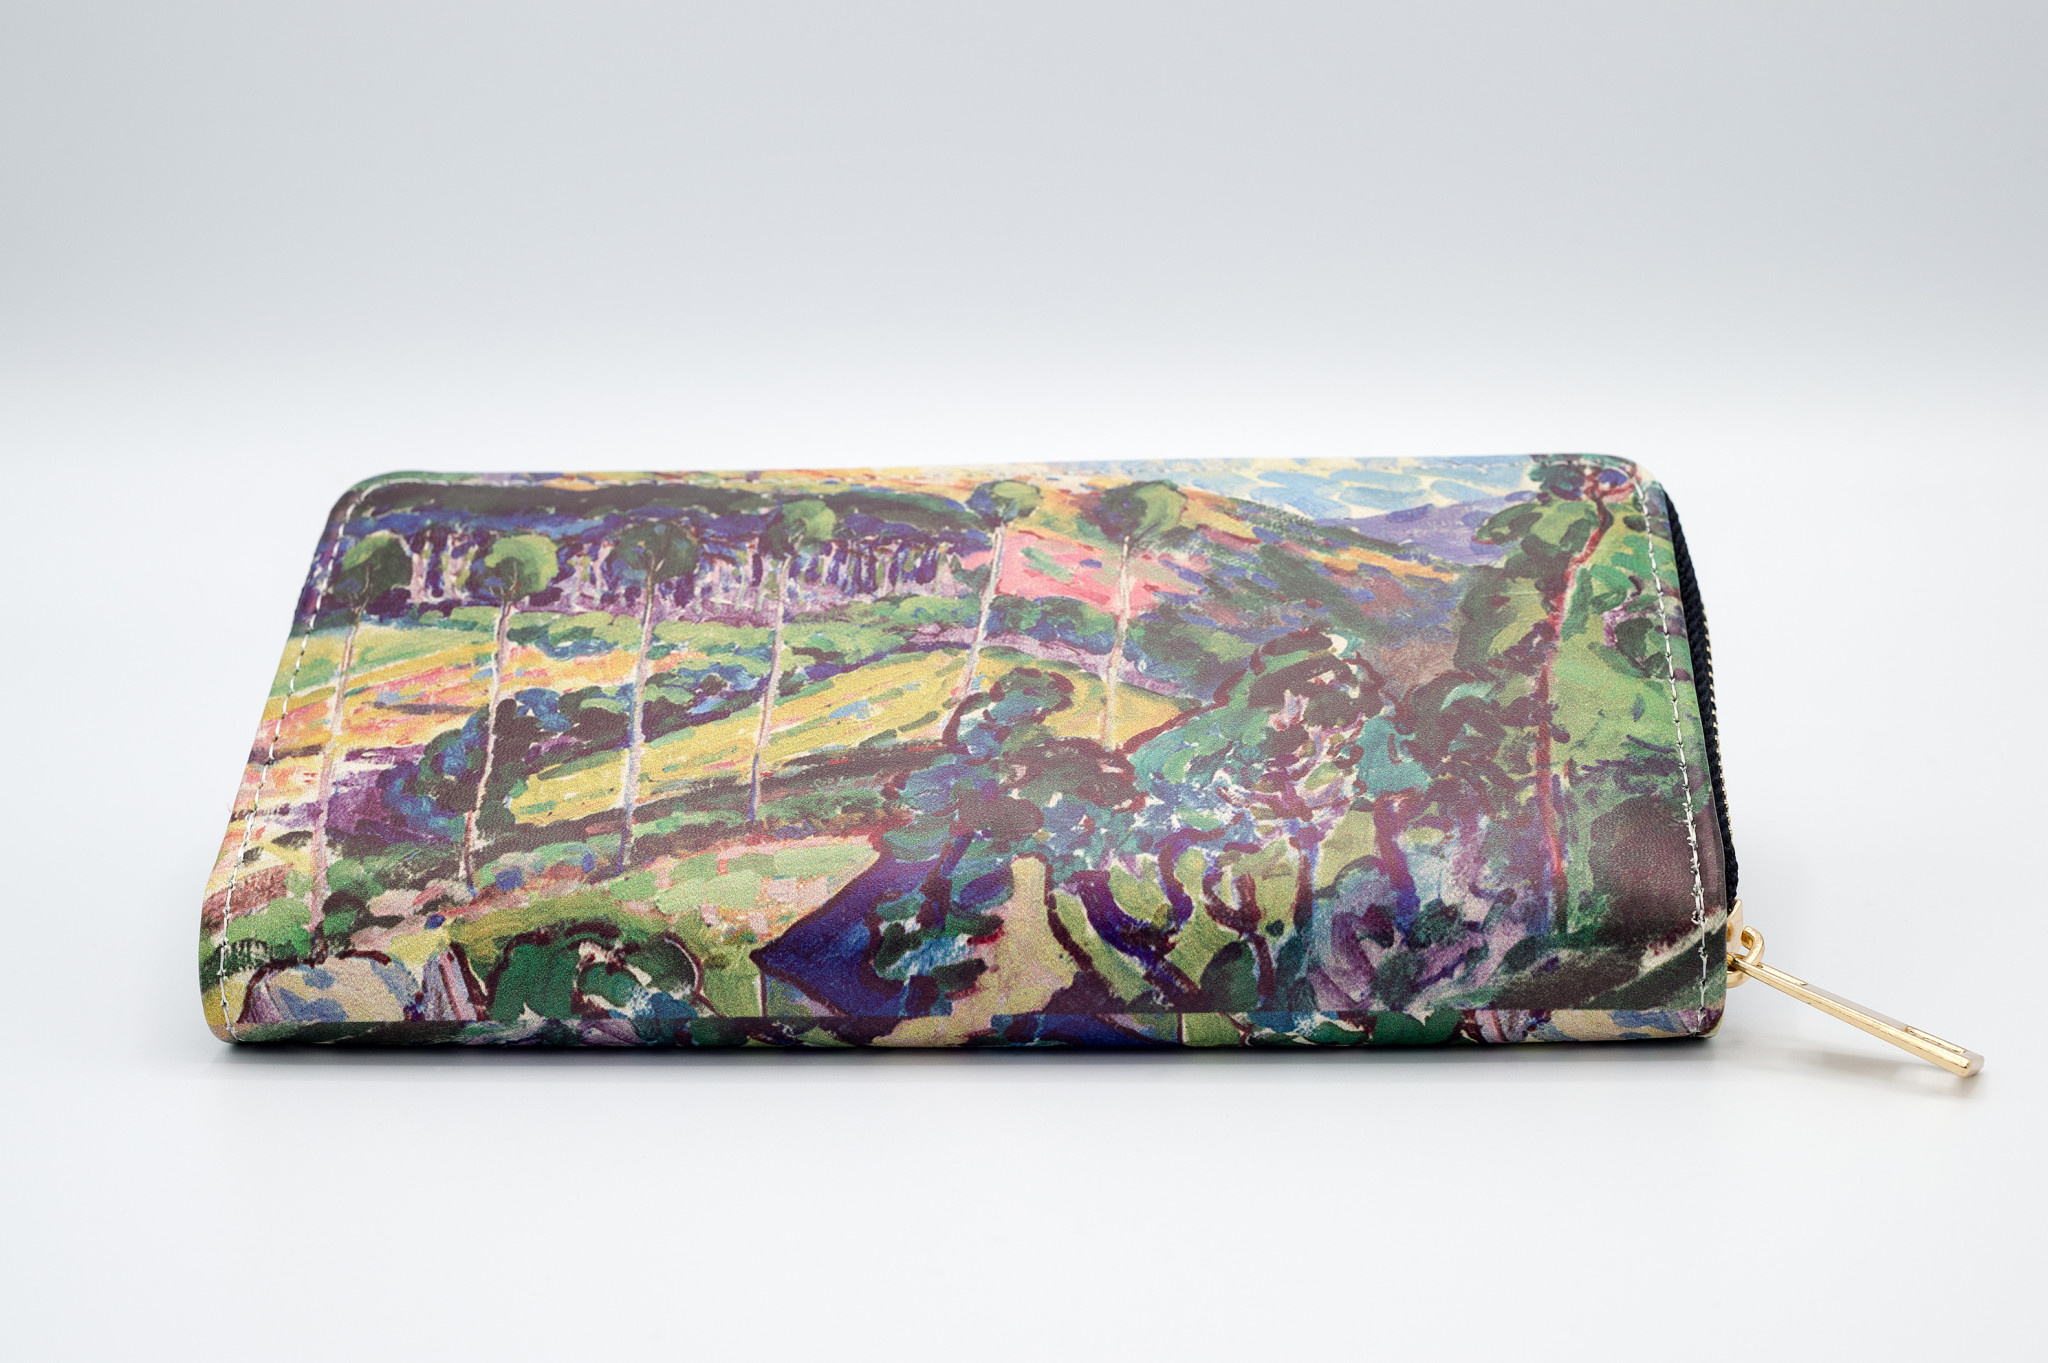 AAM Collection Wallet - Emily Carr - Le Paysage - Large